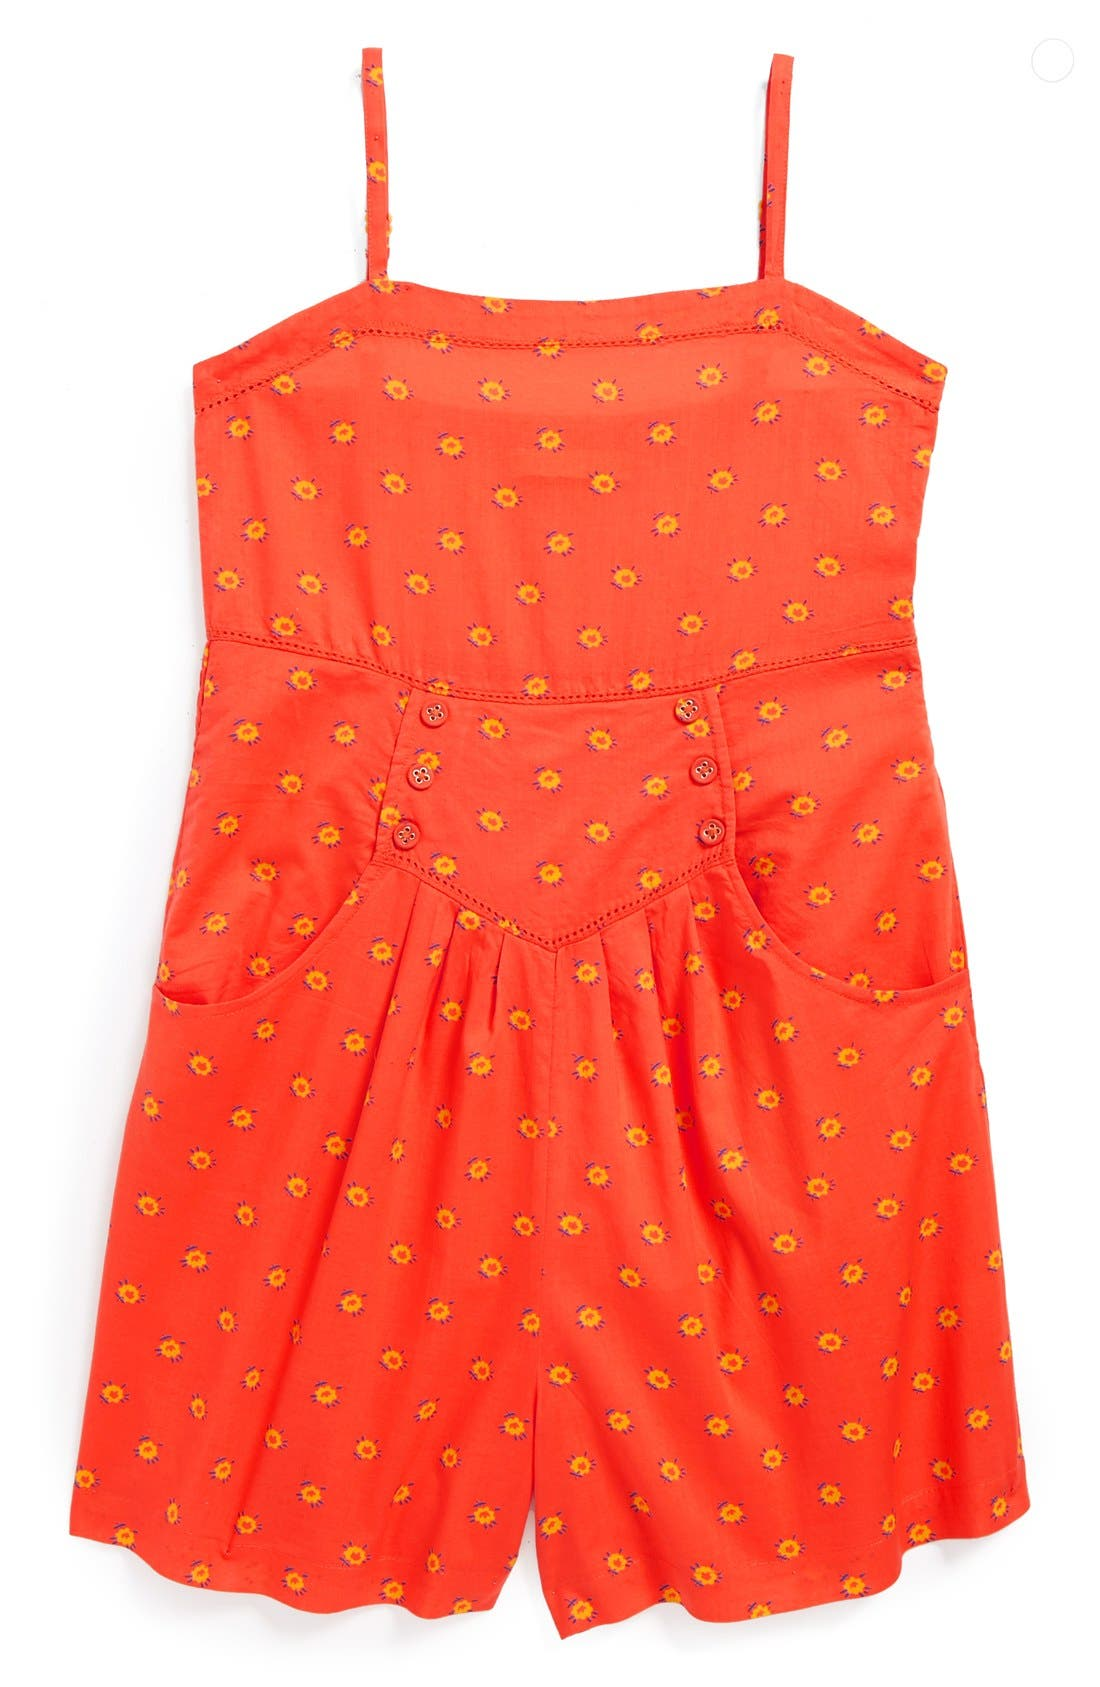 Alternate Image 1 Selected - Stella McCartney Floral Print Cotton Romper (Toddler Girls, Little Girls & Big Girls)